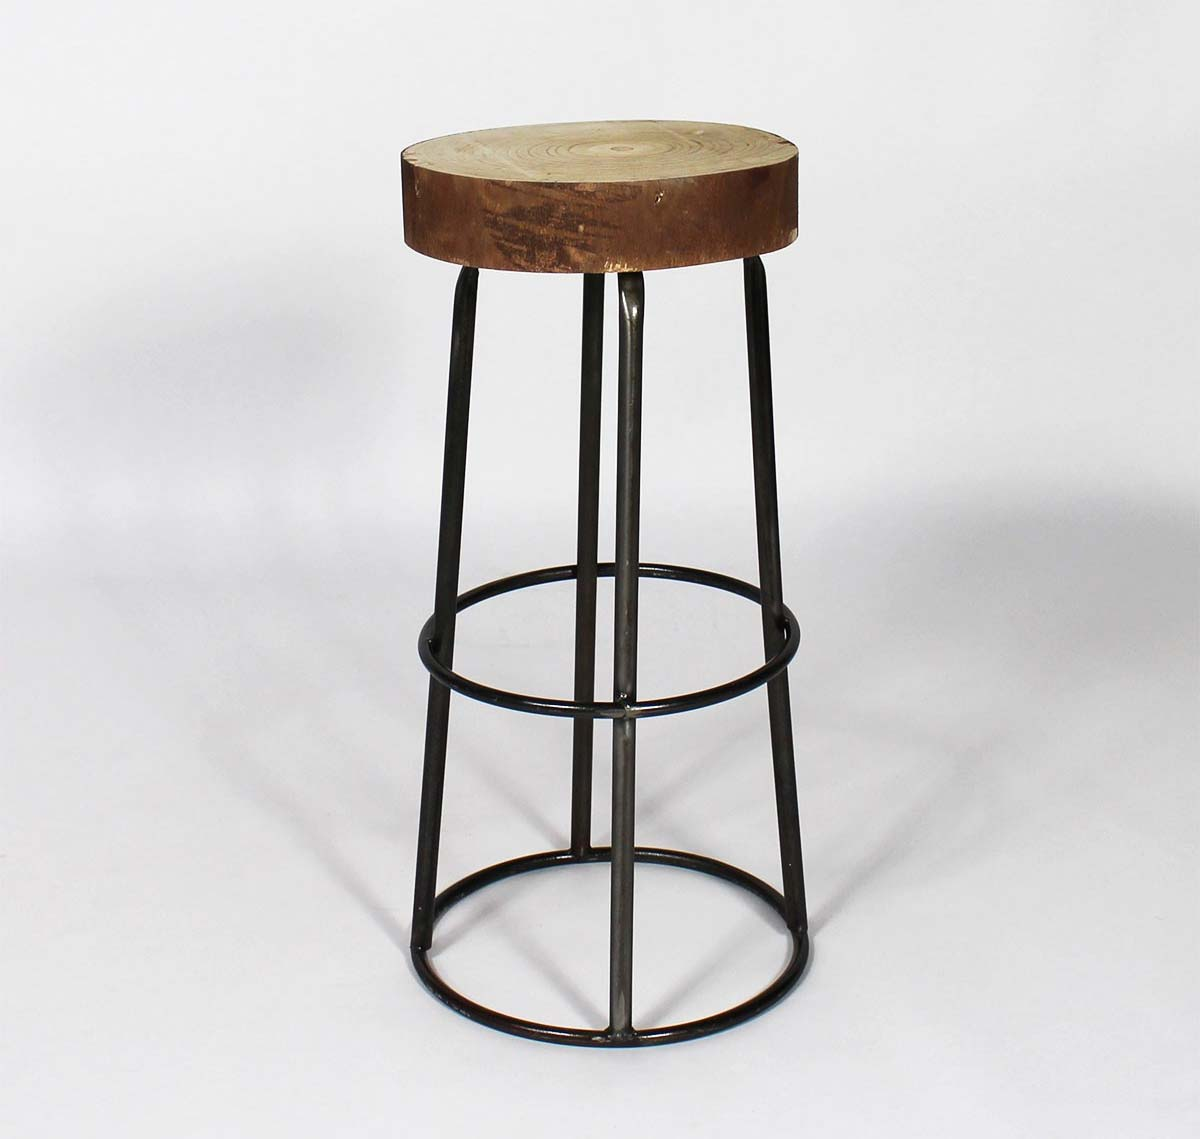 tabouret de bar avec assise tronc d 39 arbre. Black Bedroom Furniture Sets. Home Design Ideas